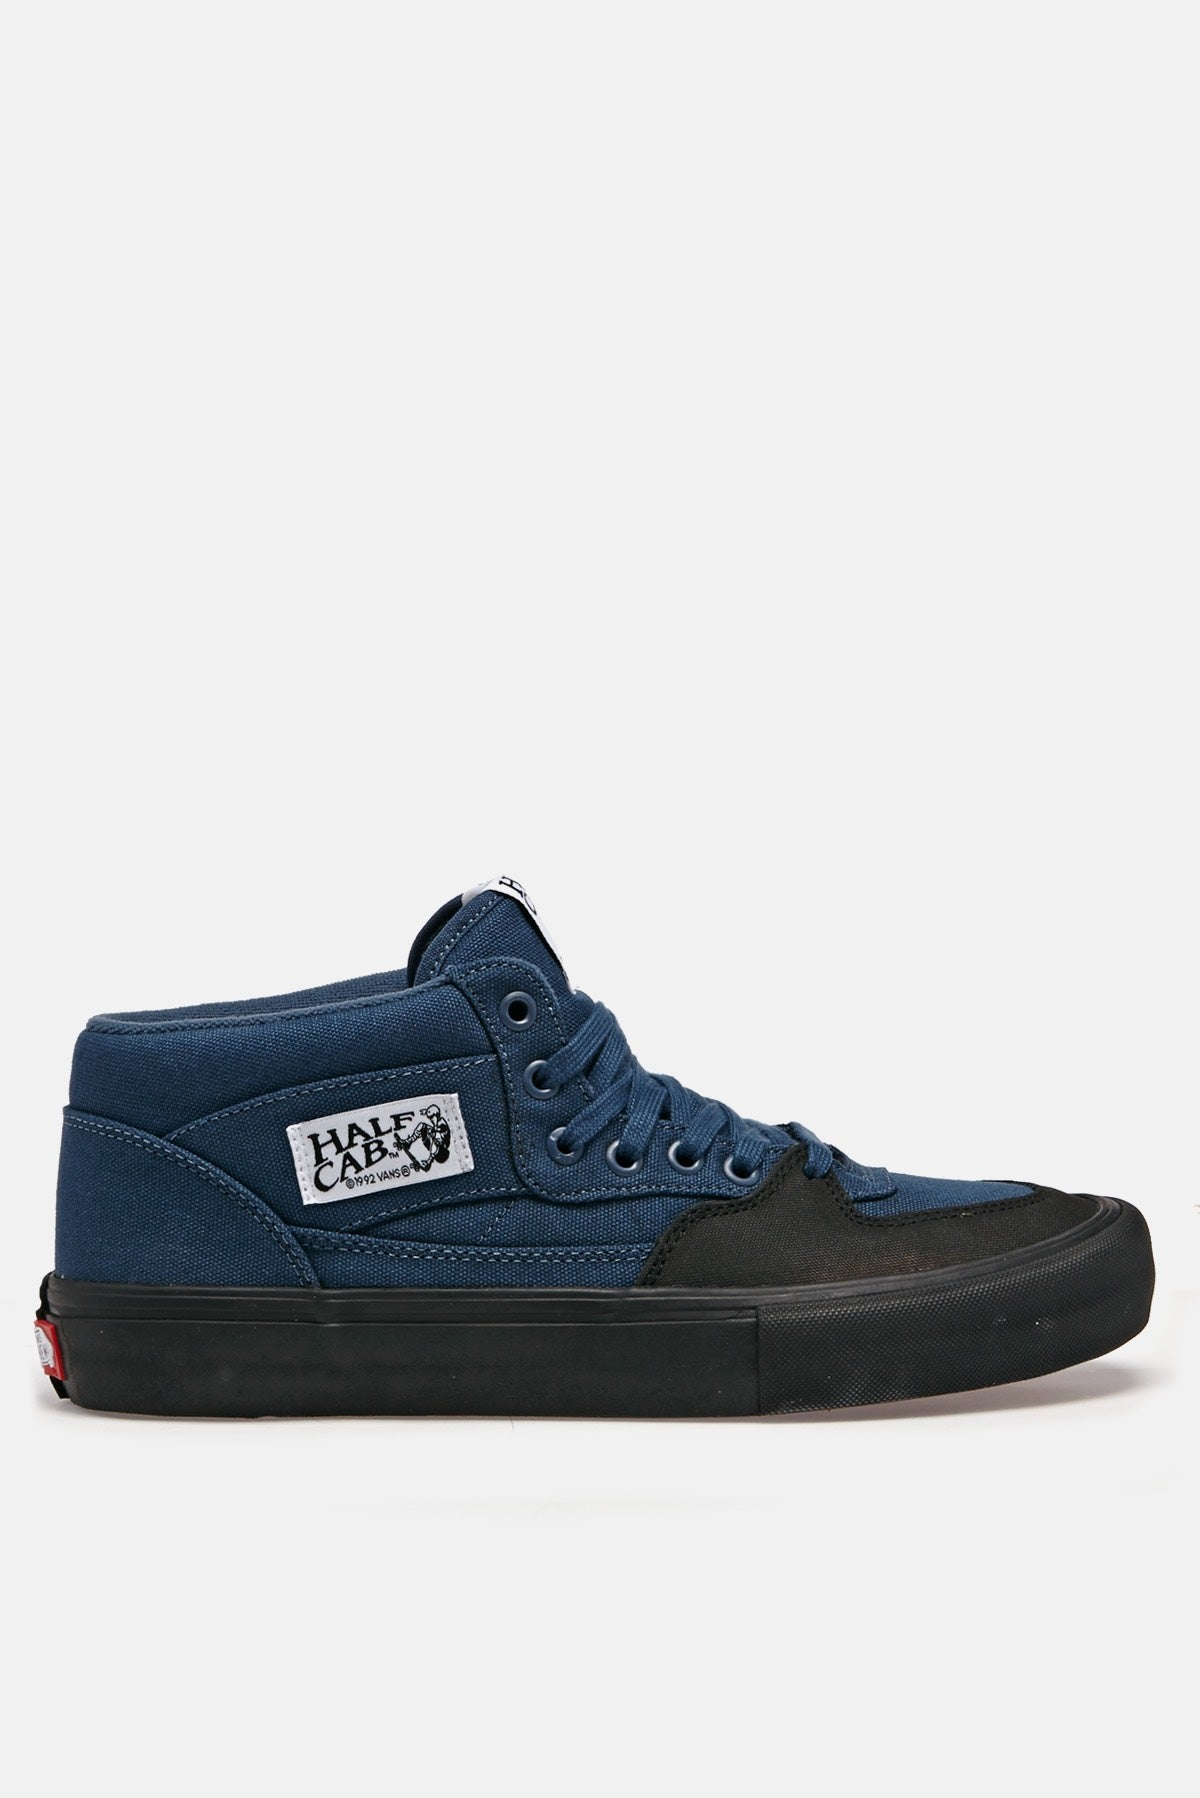 01d18704dd Vans Half Cab Pro Shoes available from Priory